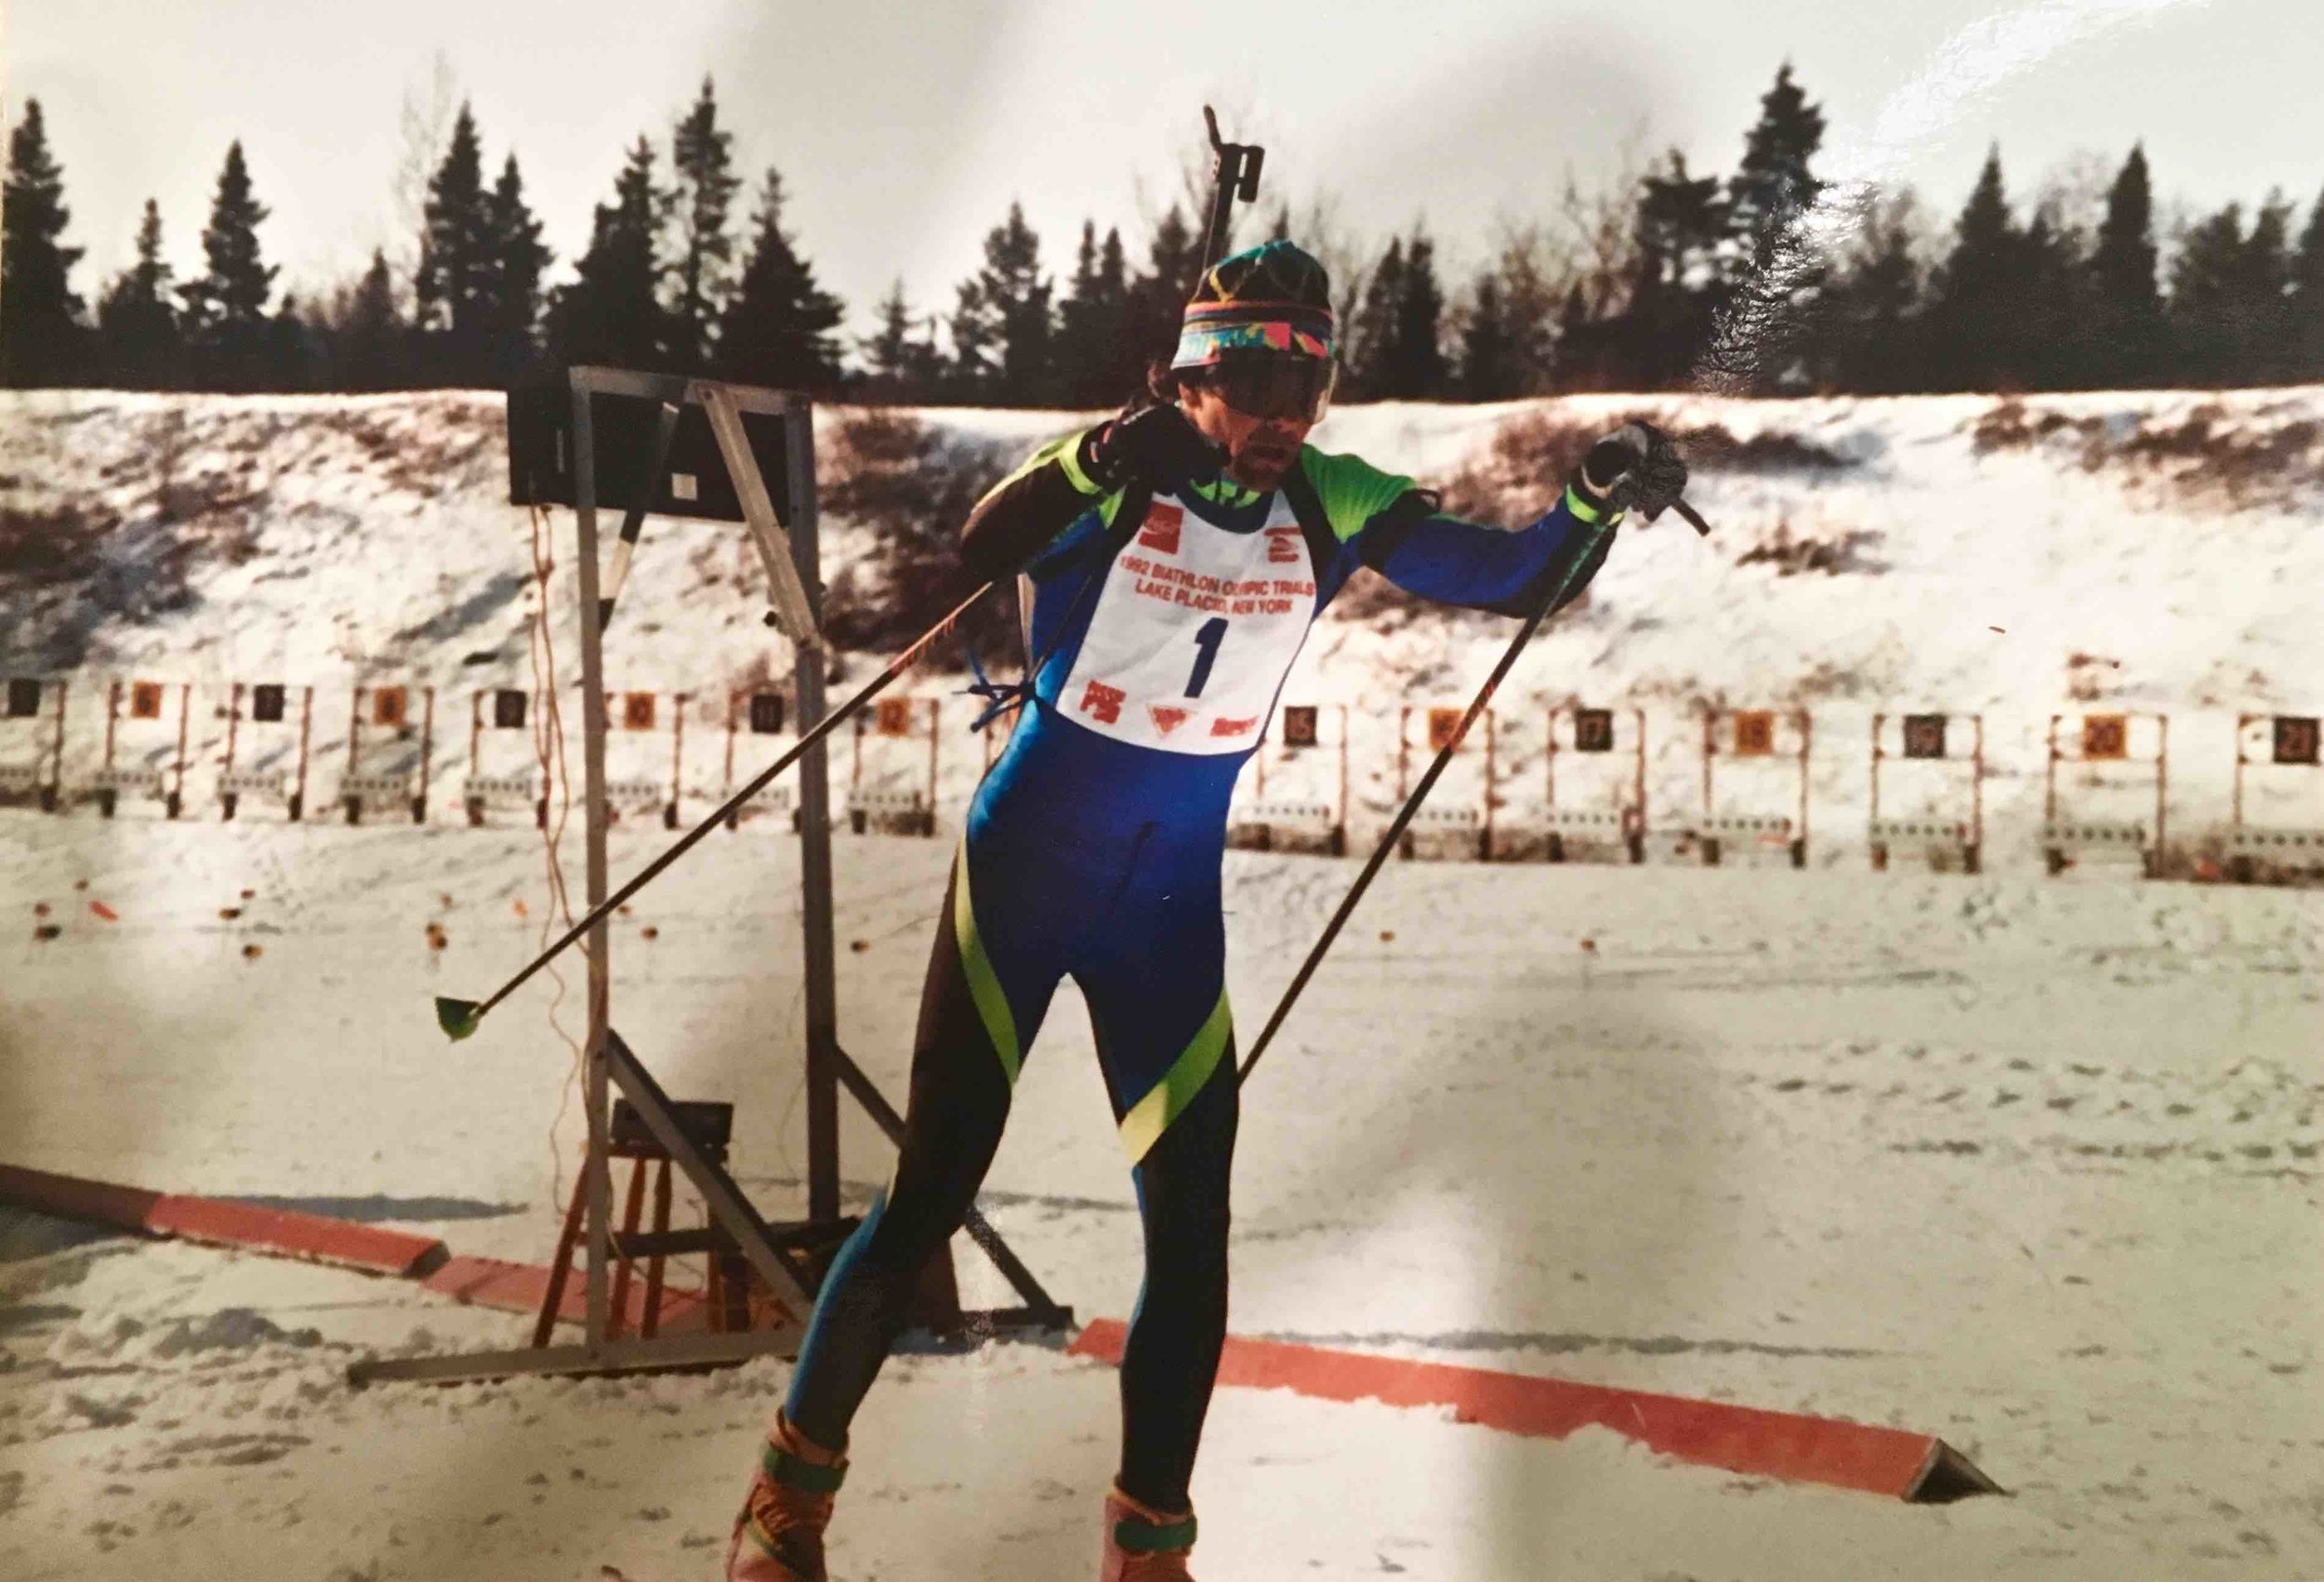 Old days: 10th place, '92 Olympic Trials.